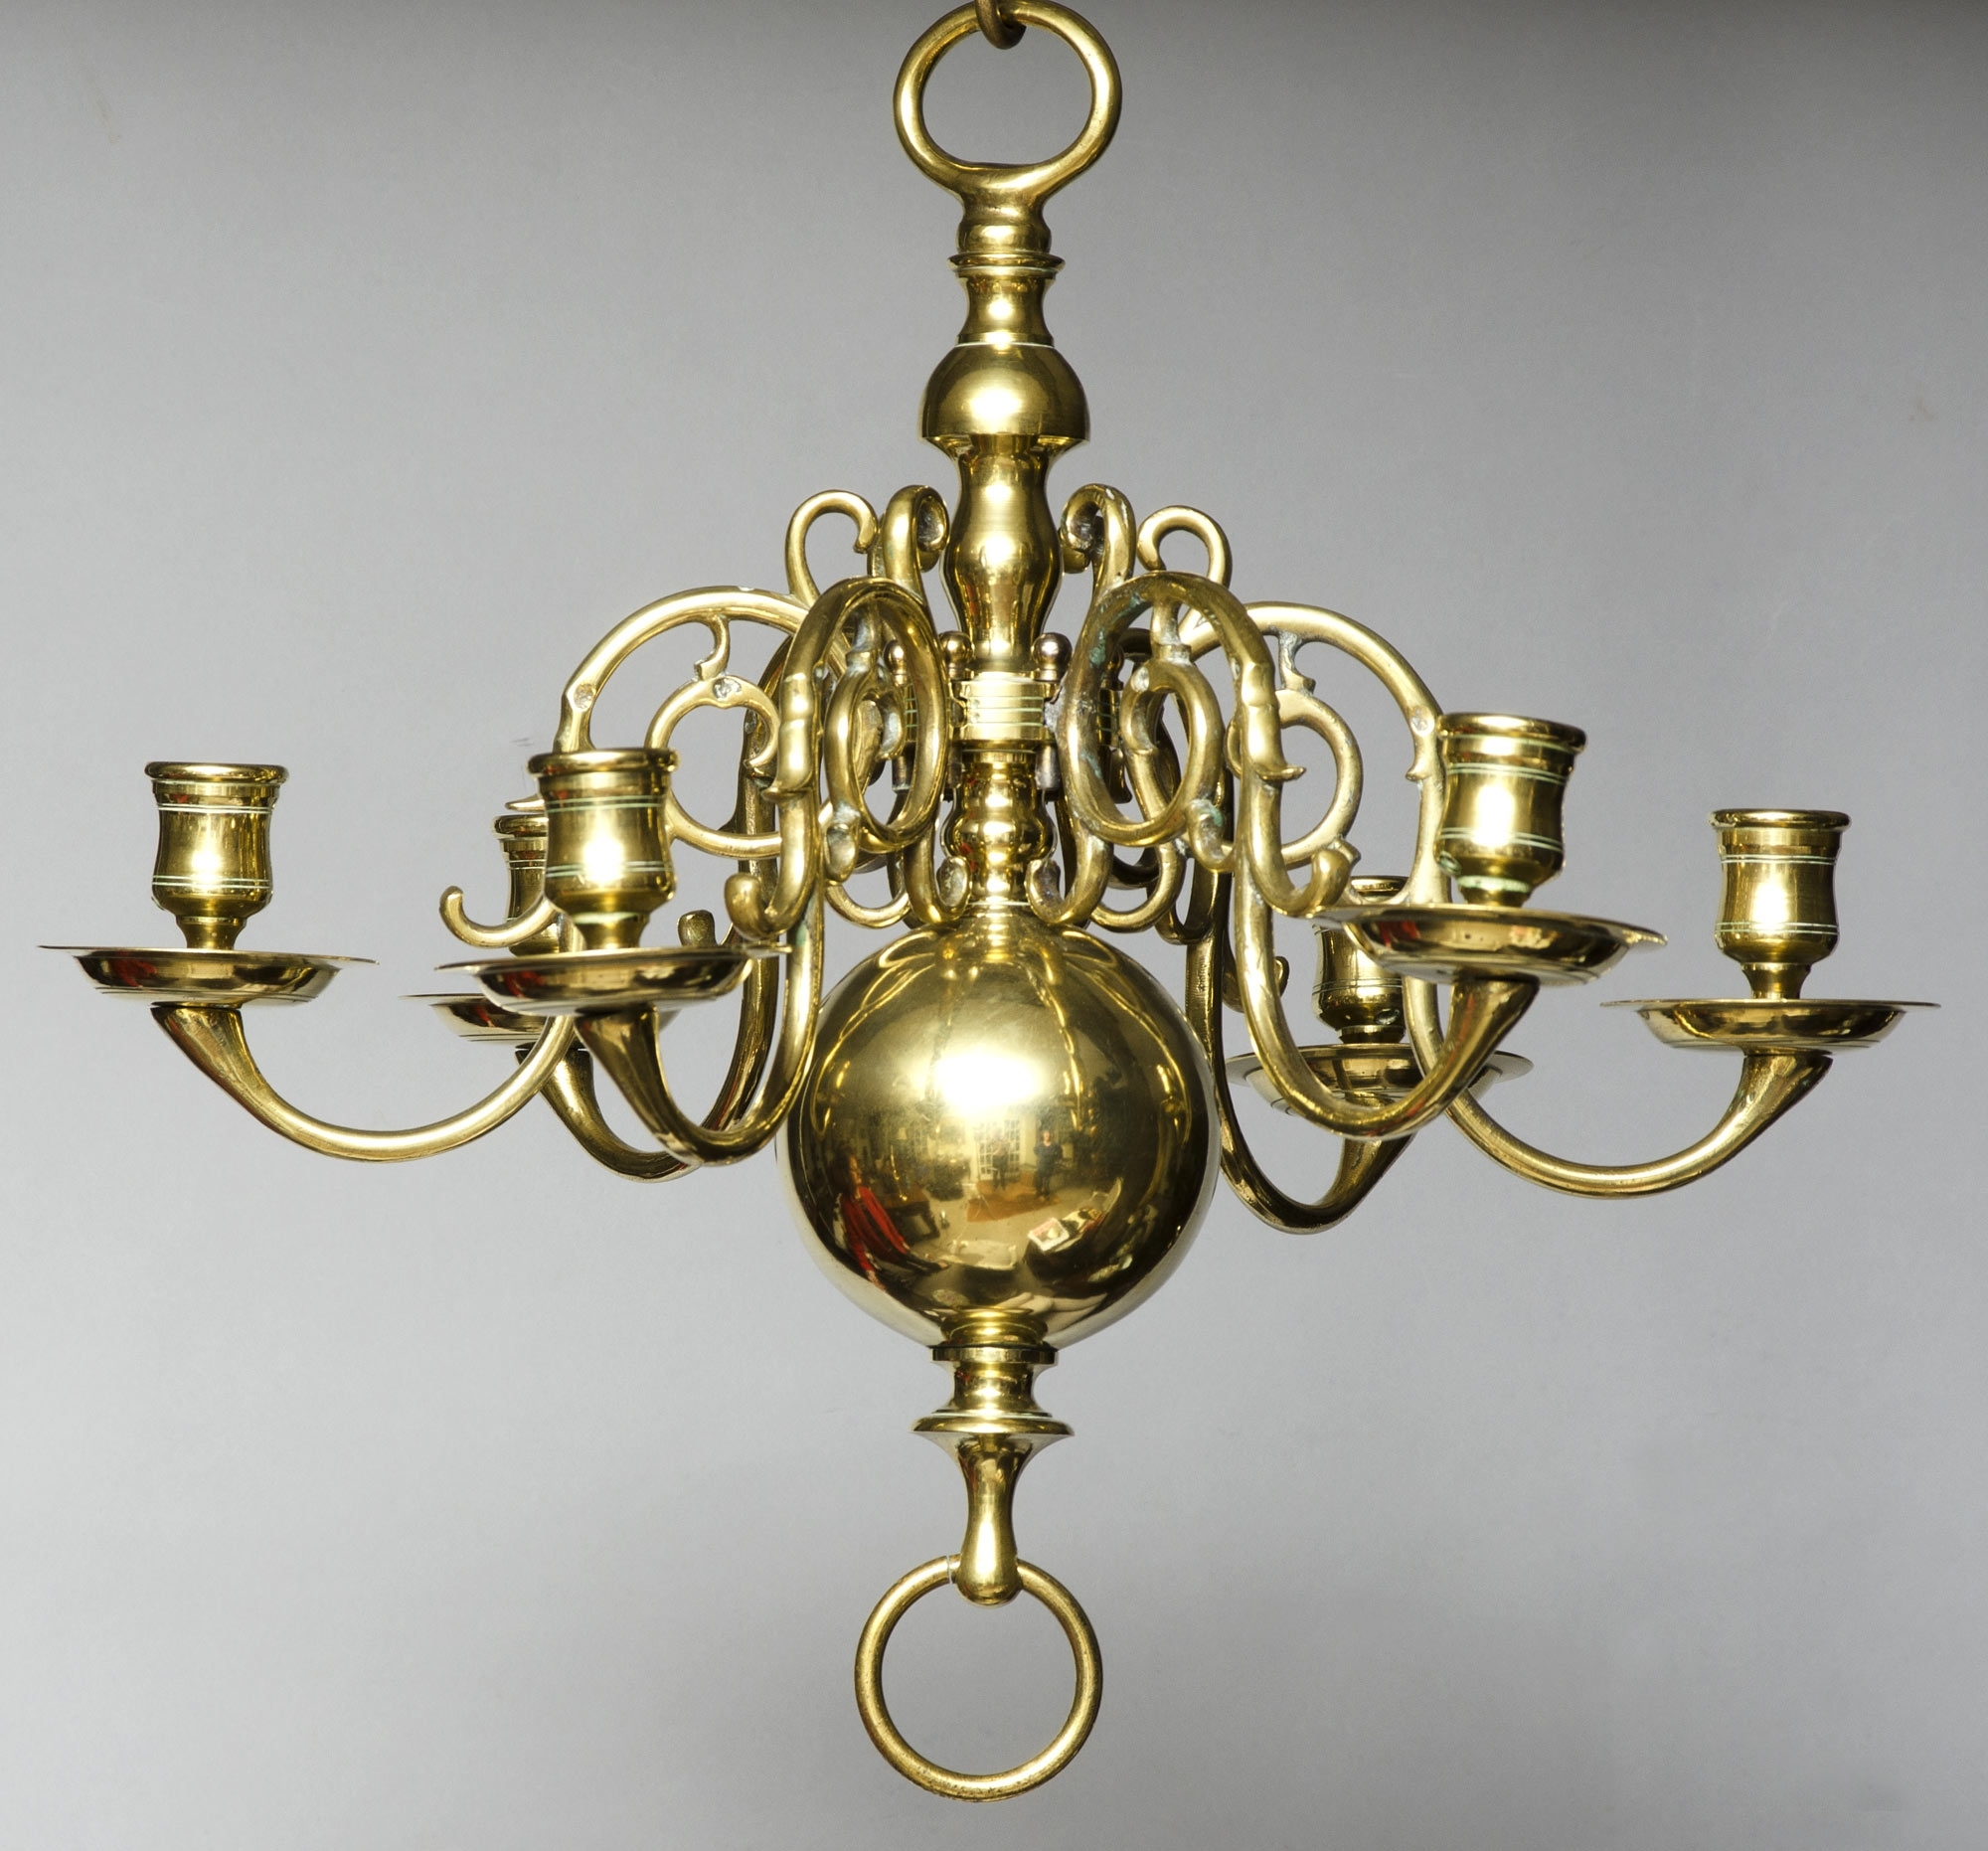 Product » Small Dutch Brass Chandelier Within Widely Used Old Brass Chandeliers (View 3 of 15)